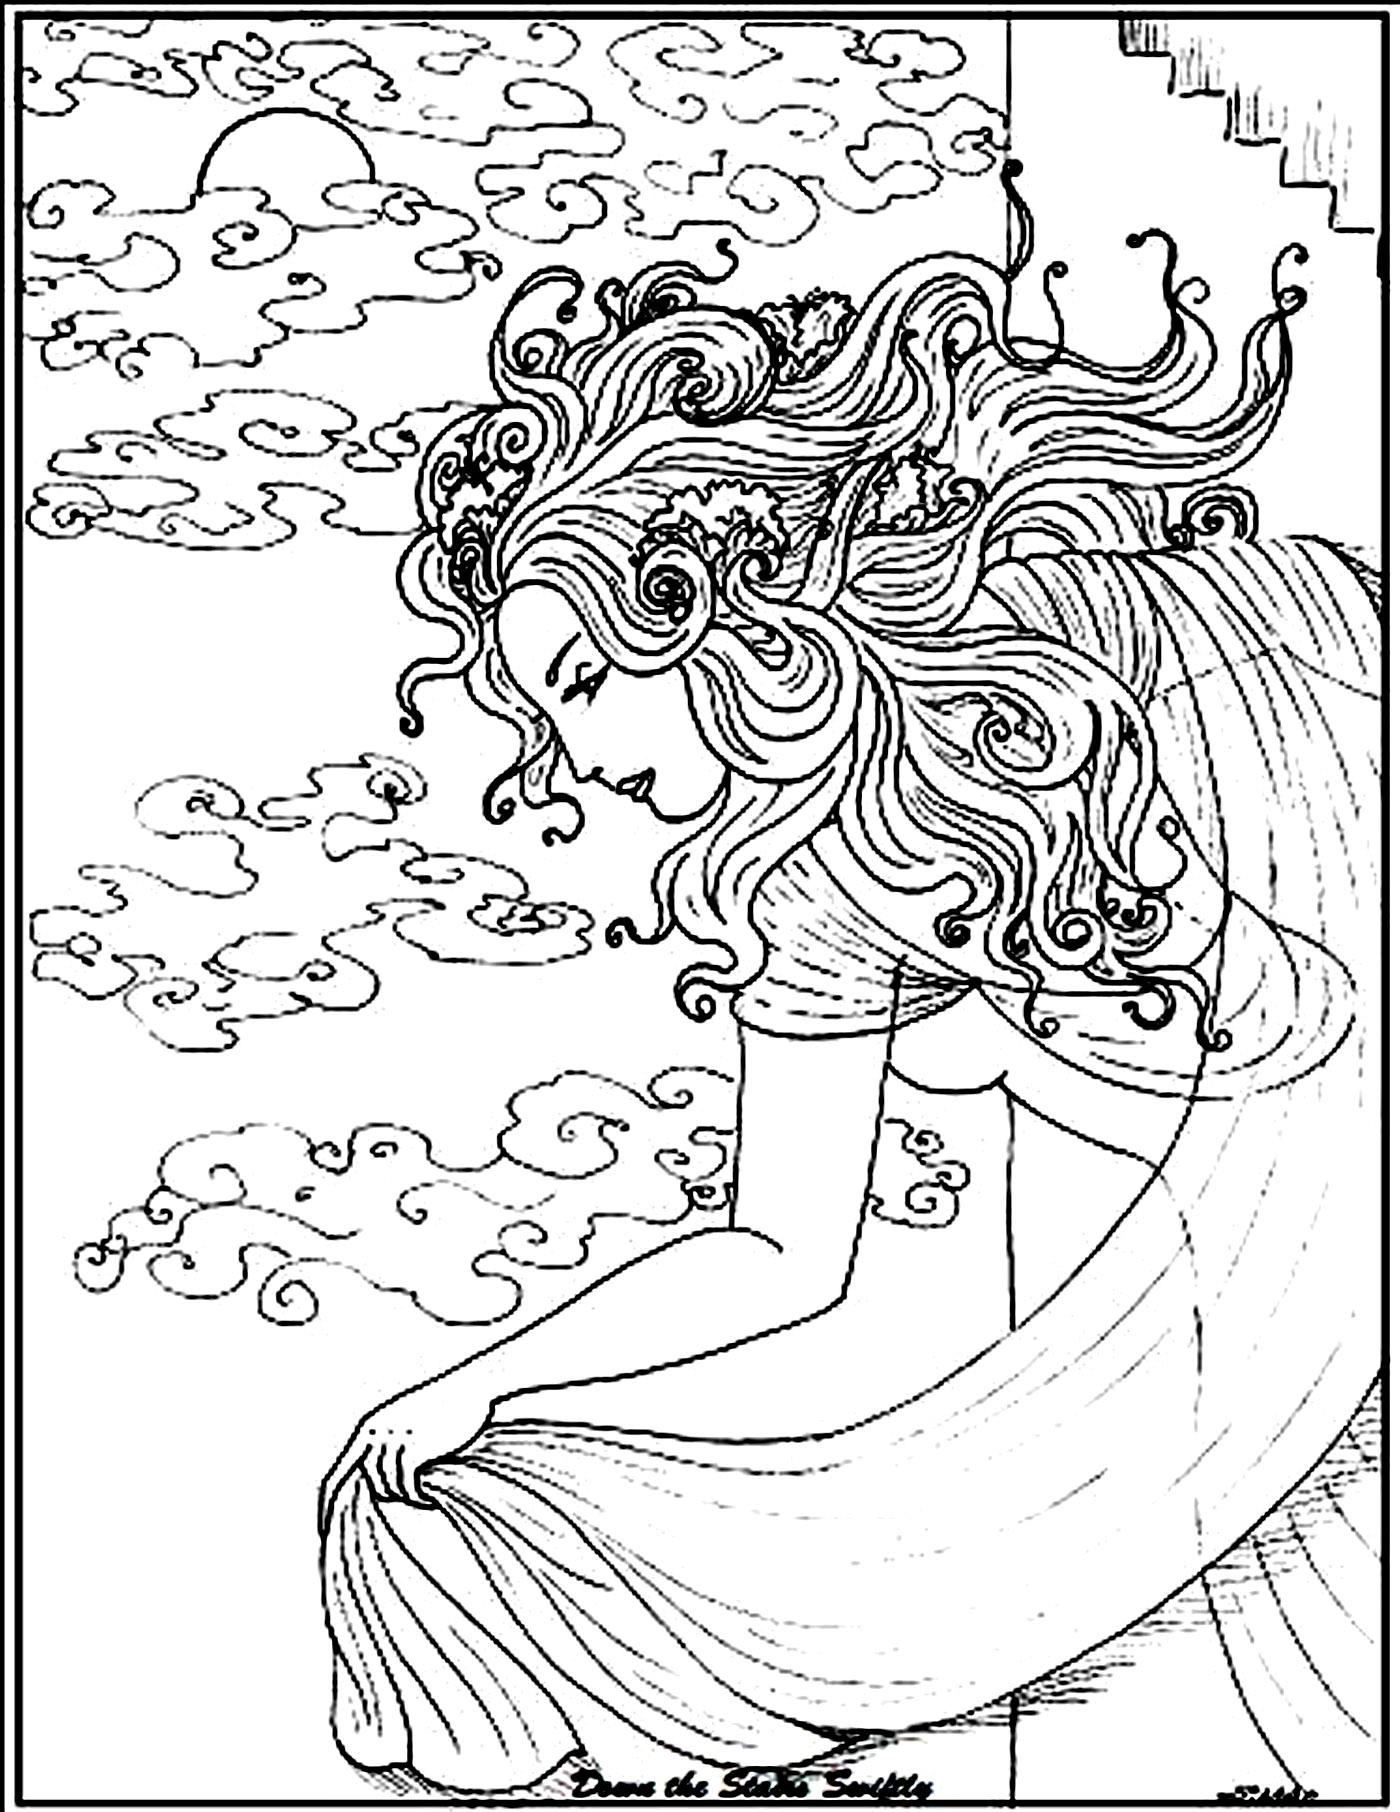 Myths  legends  Coloring pages for adults  JustColor  Page 3